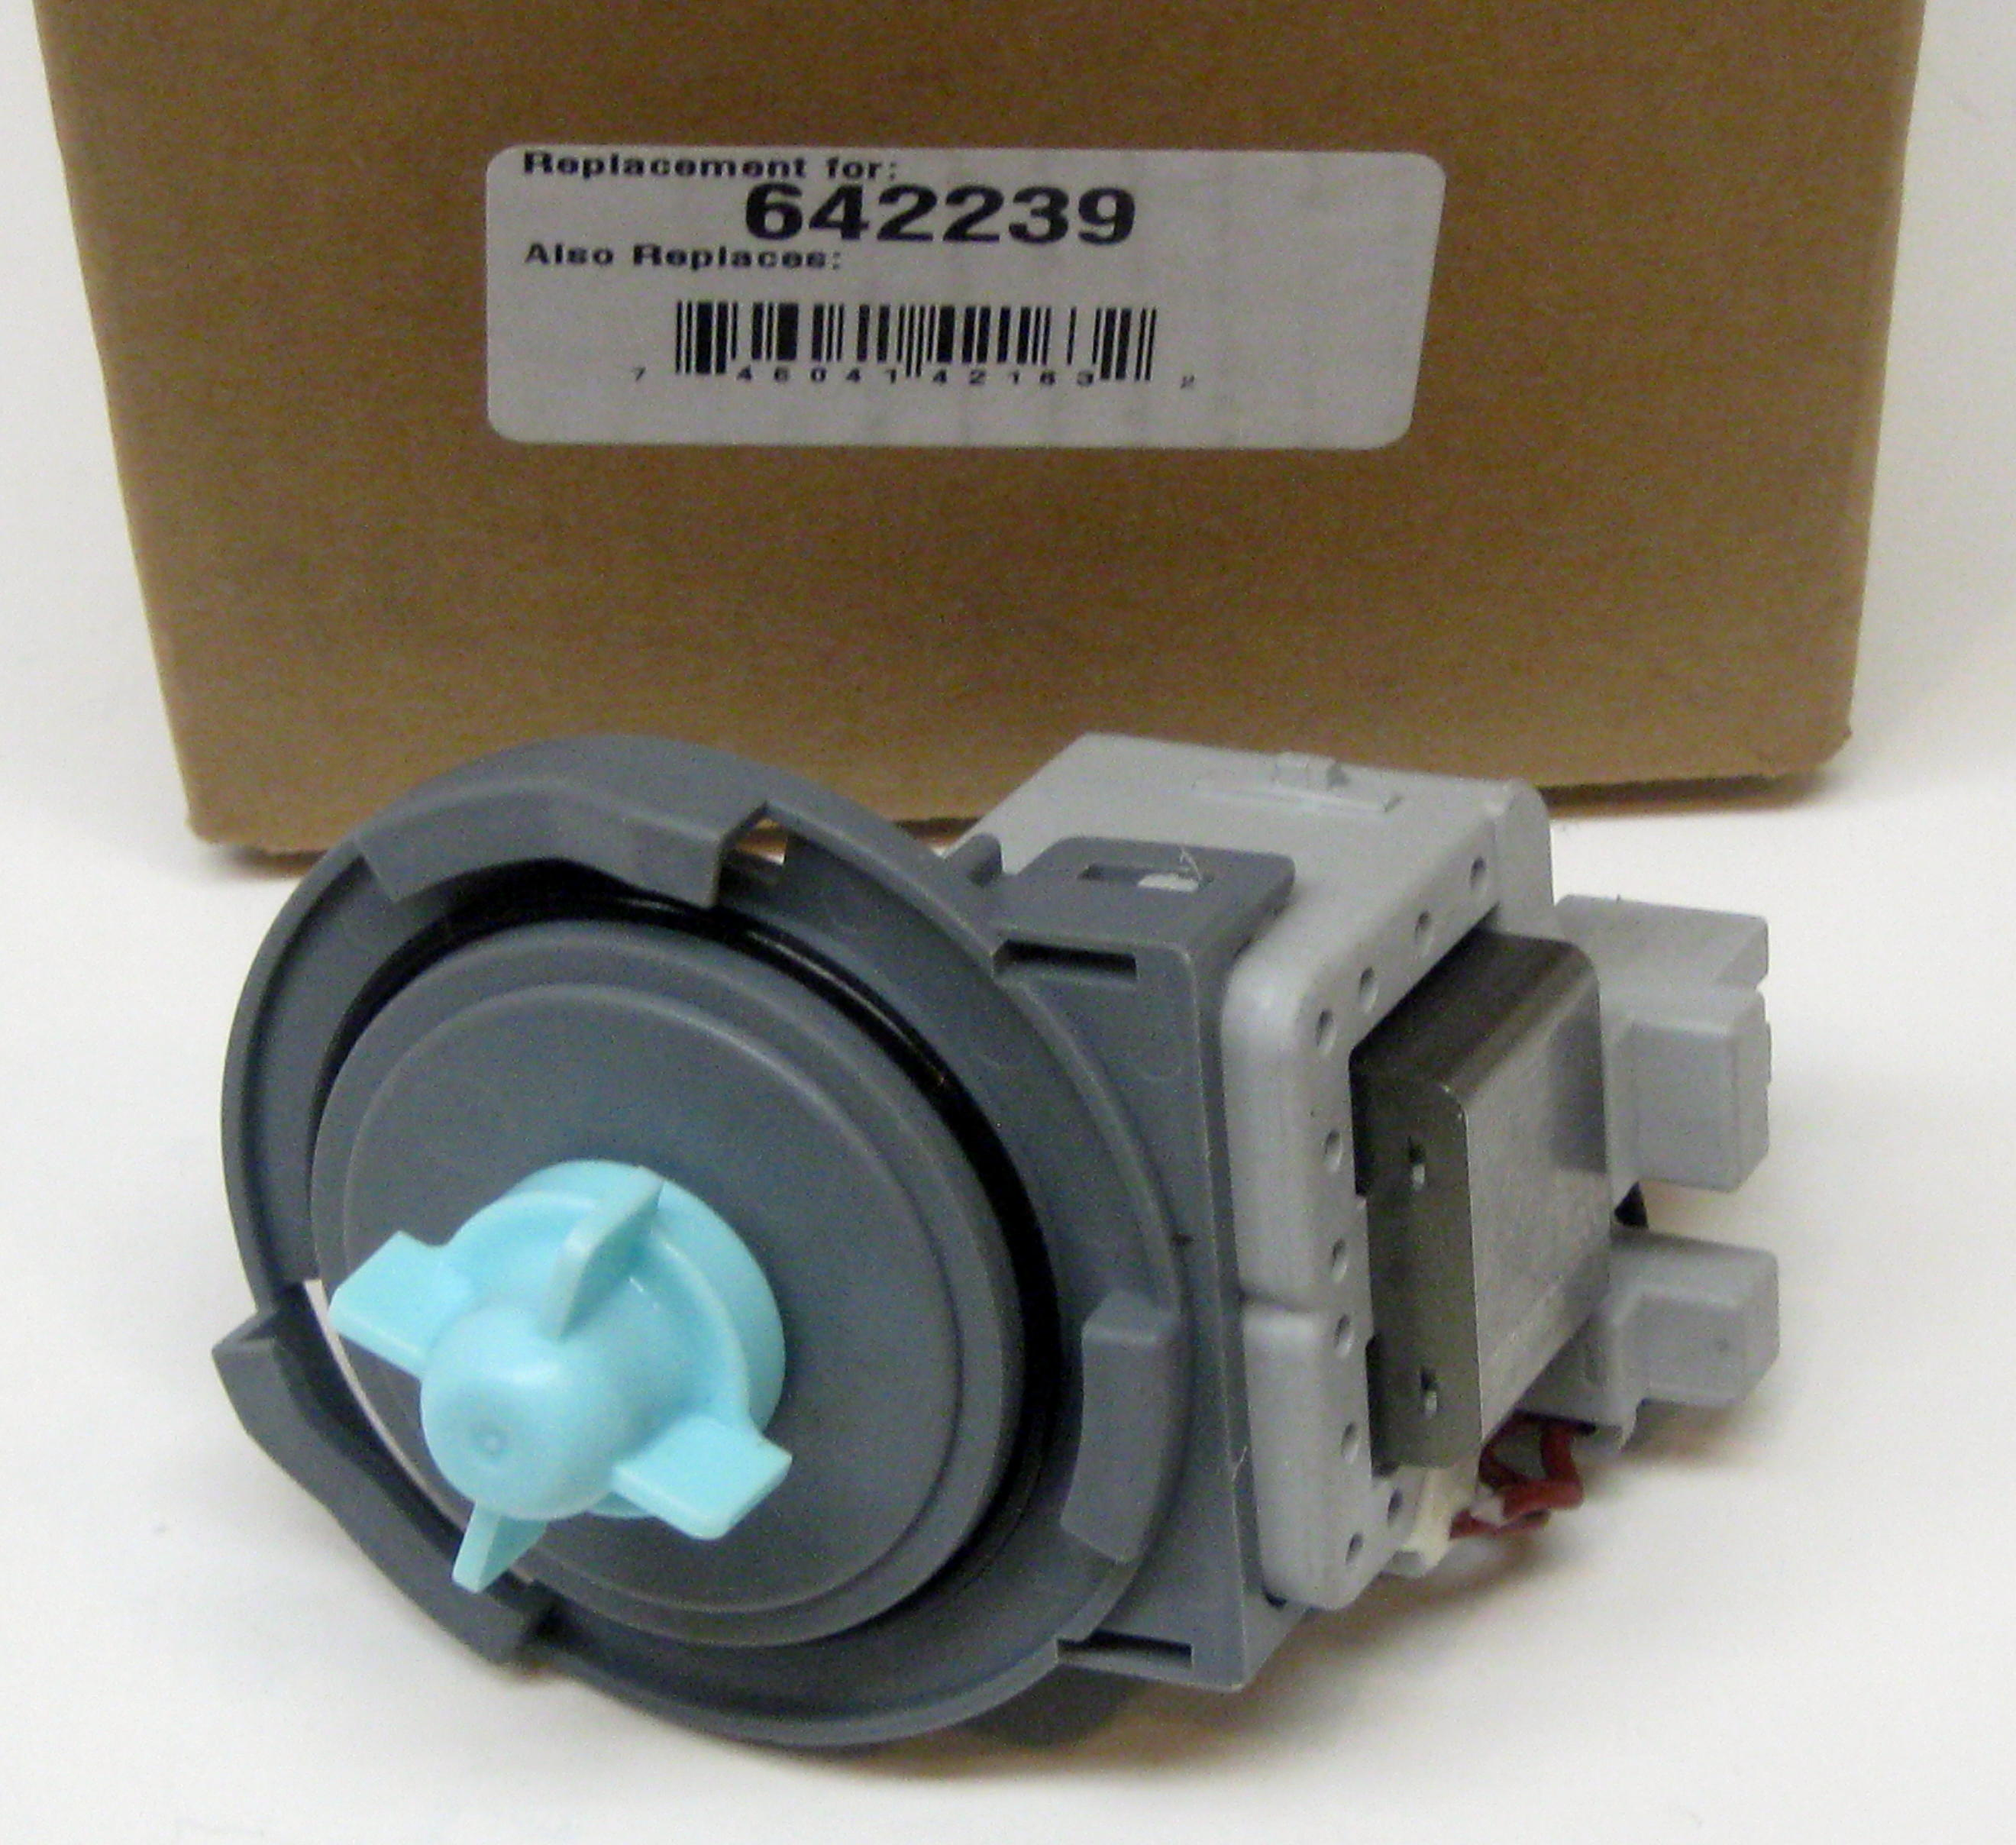 Dishwasher drain pump for bosch 00642239 ap3996662 ps8729769 642239 - Bosch dishwasher pump not draining ...